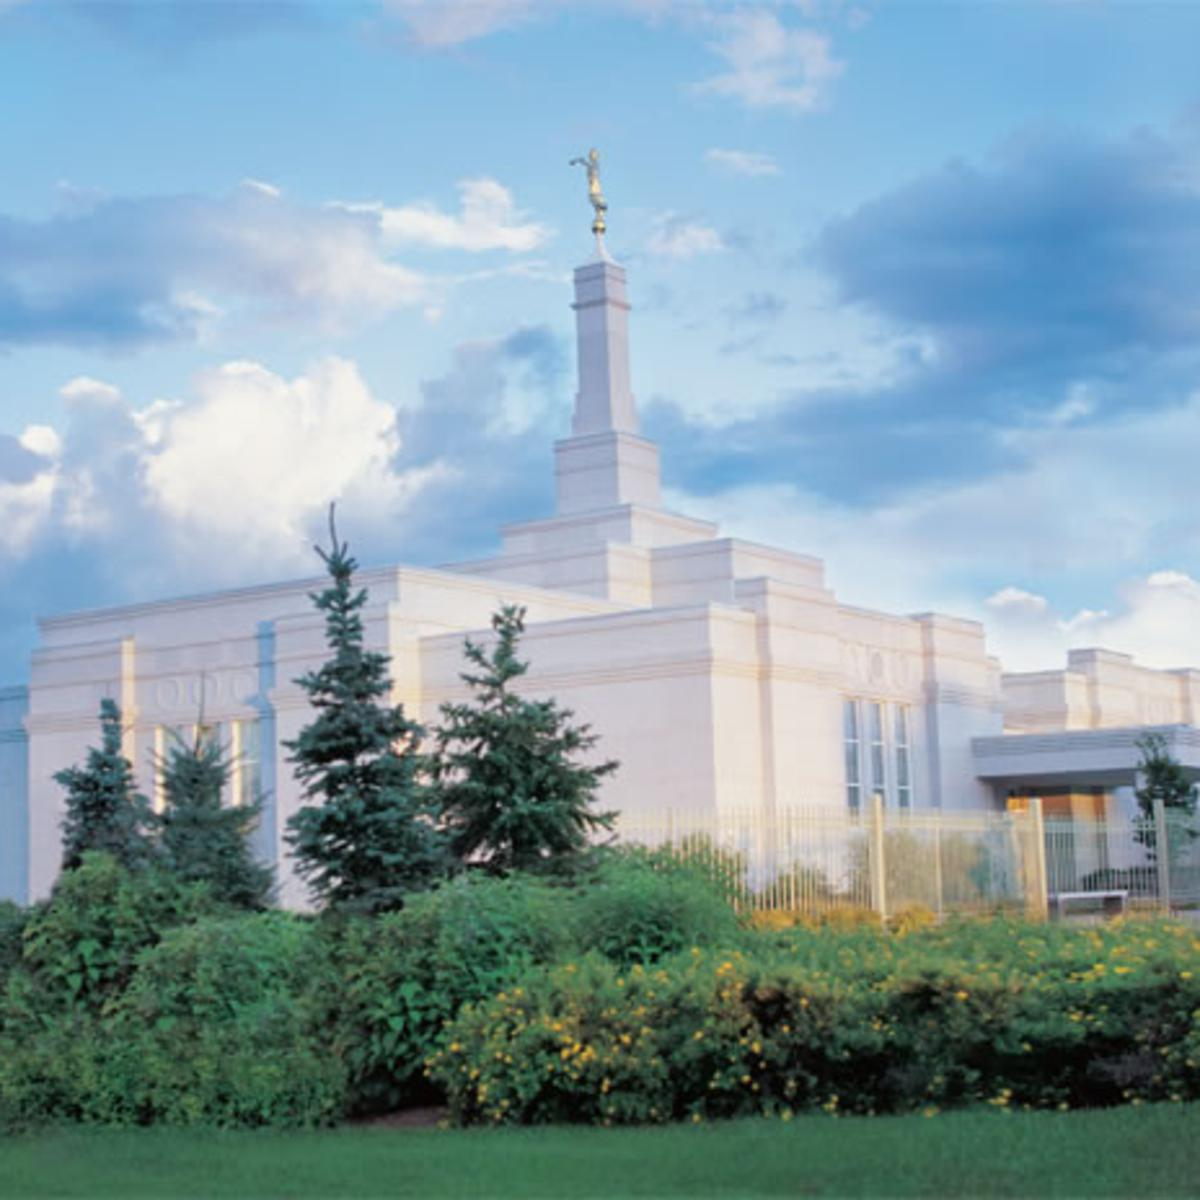 Image of the Regina Saskatchewan Mormon Temple